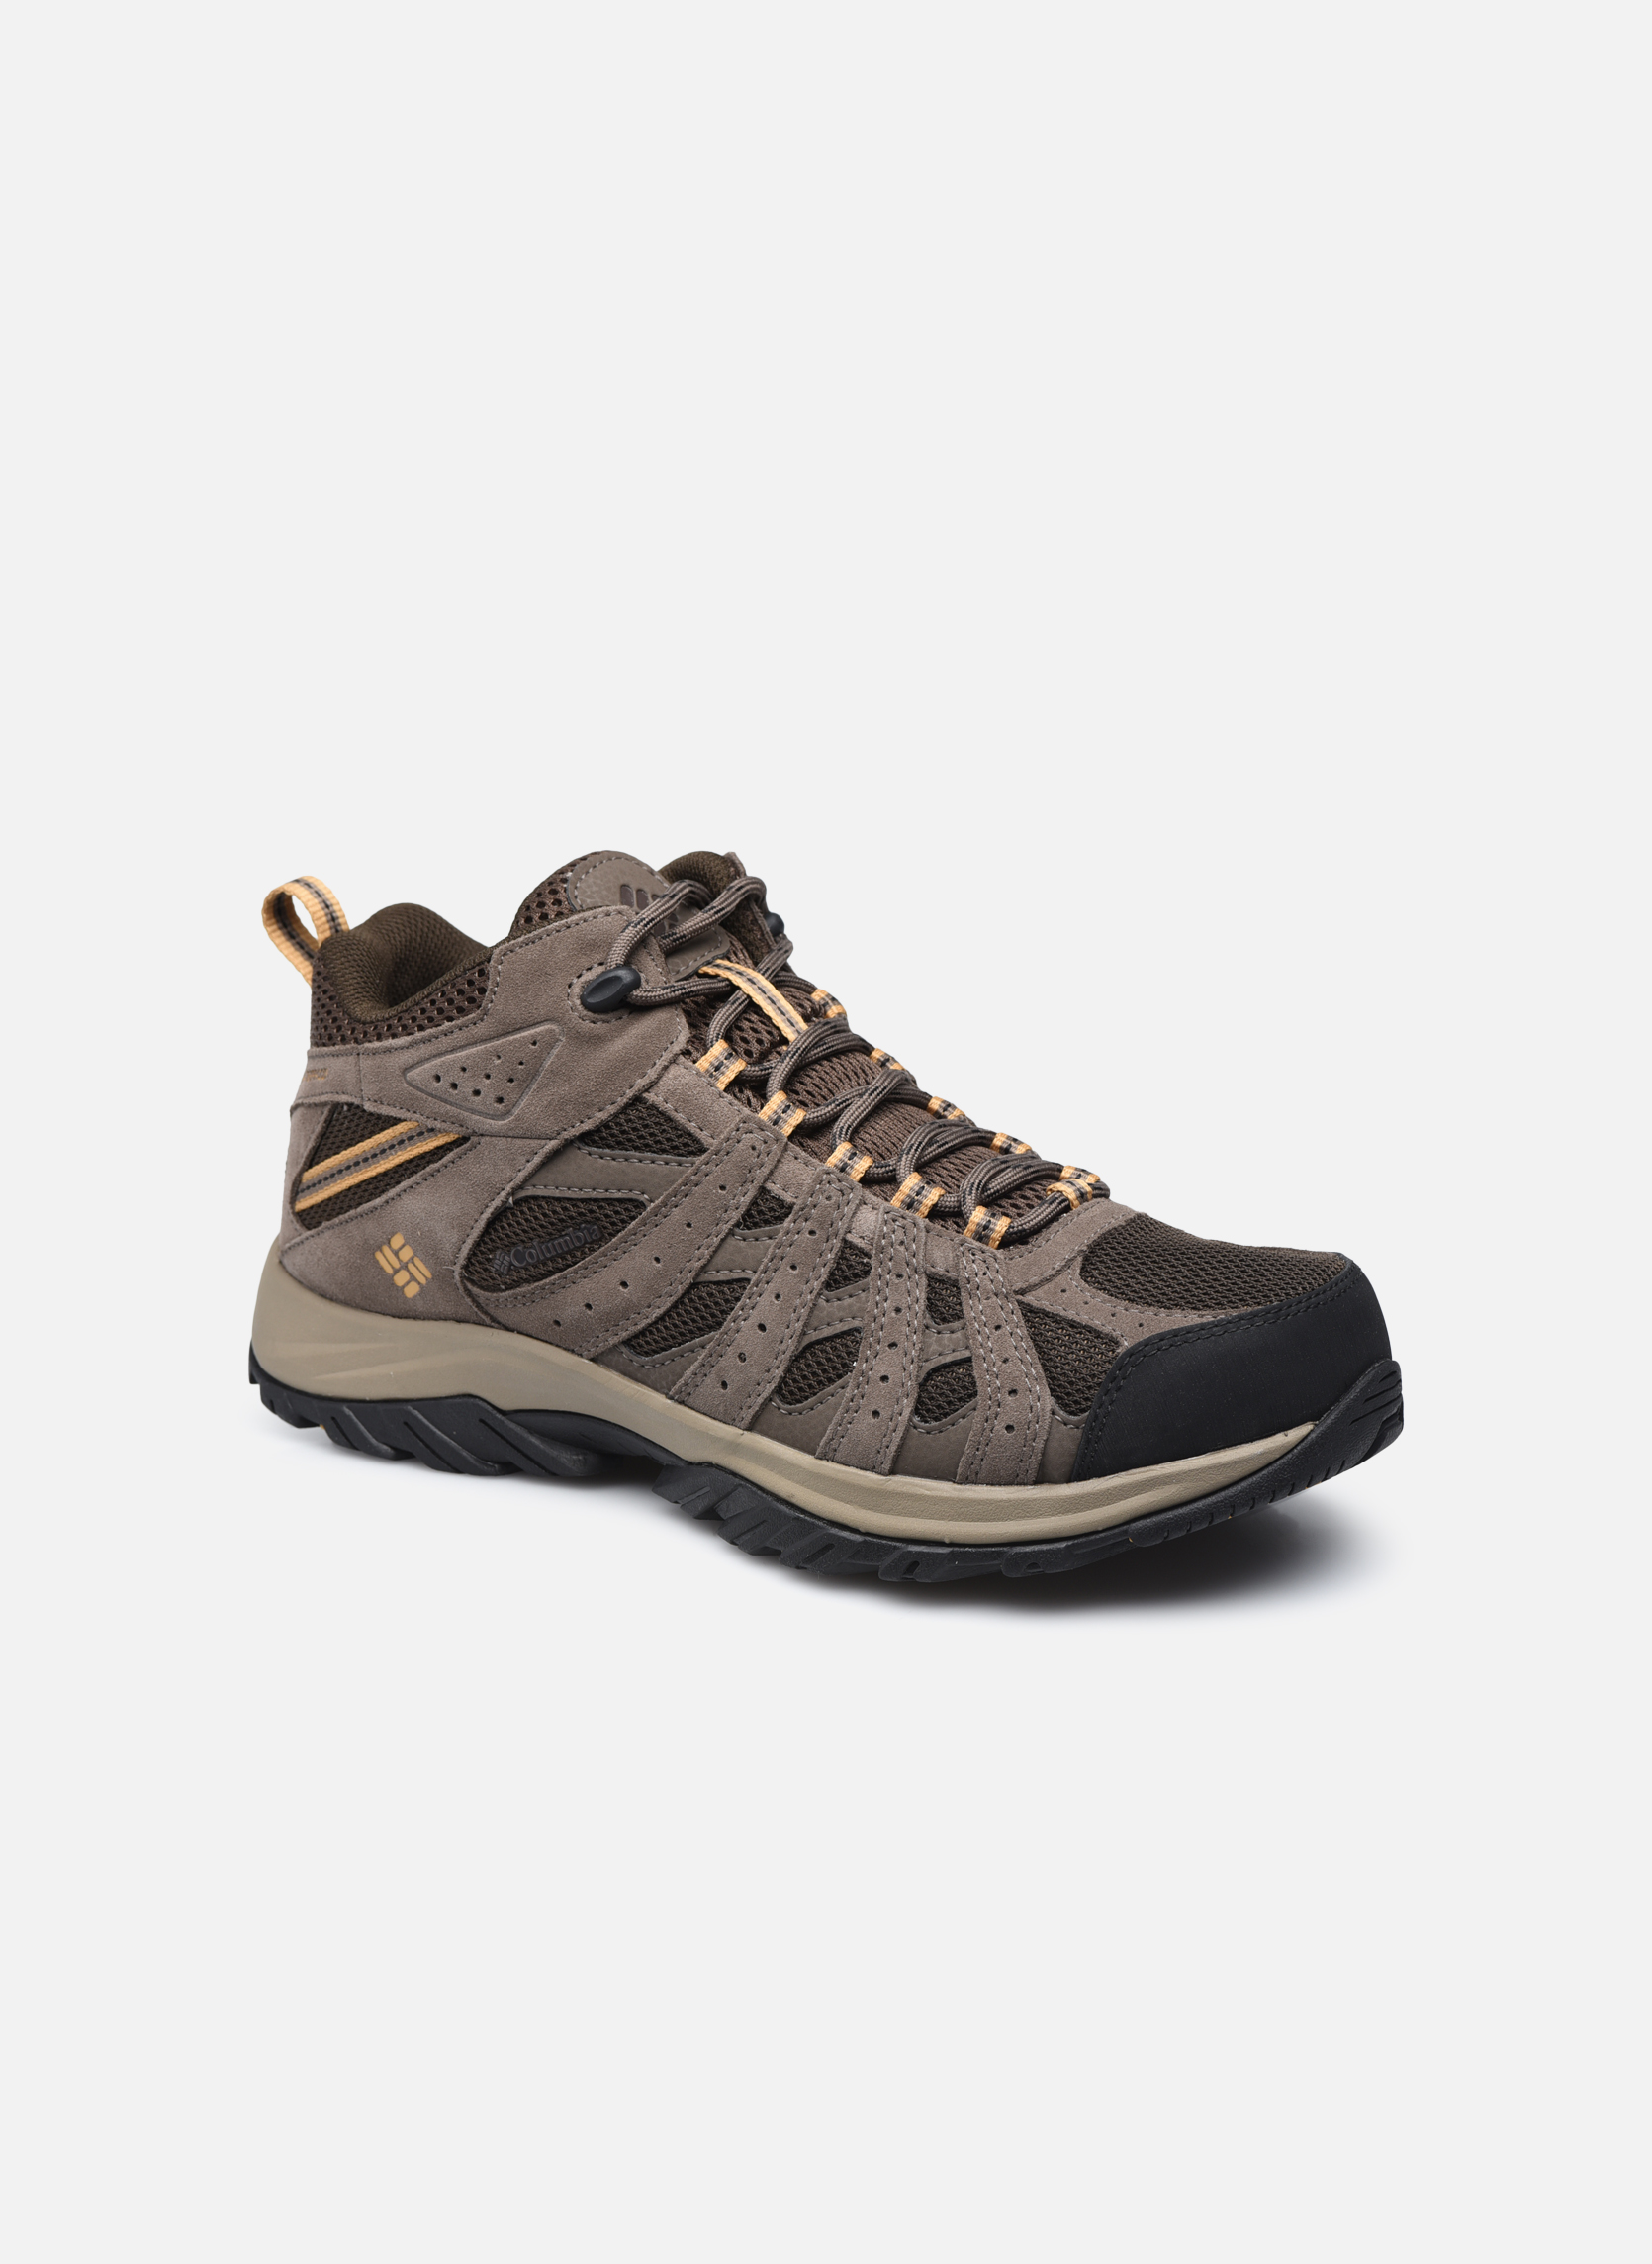 Sportssko Mænd Canyon Point Mid Waterproof